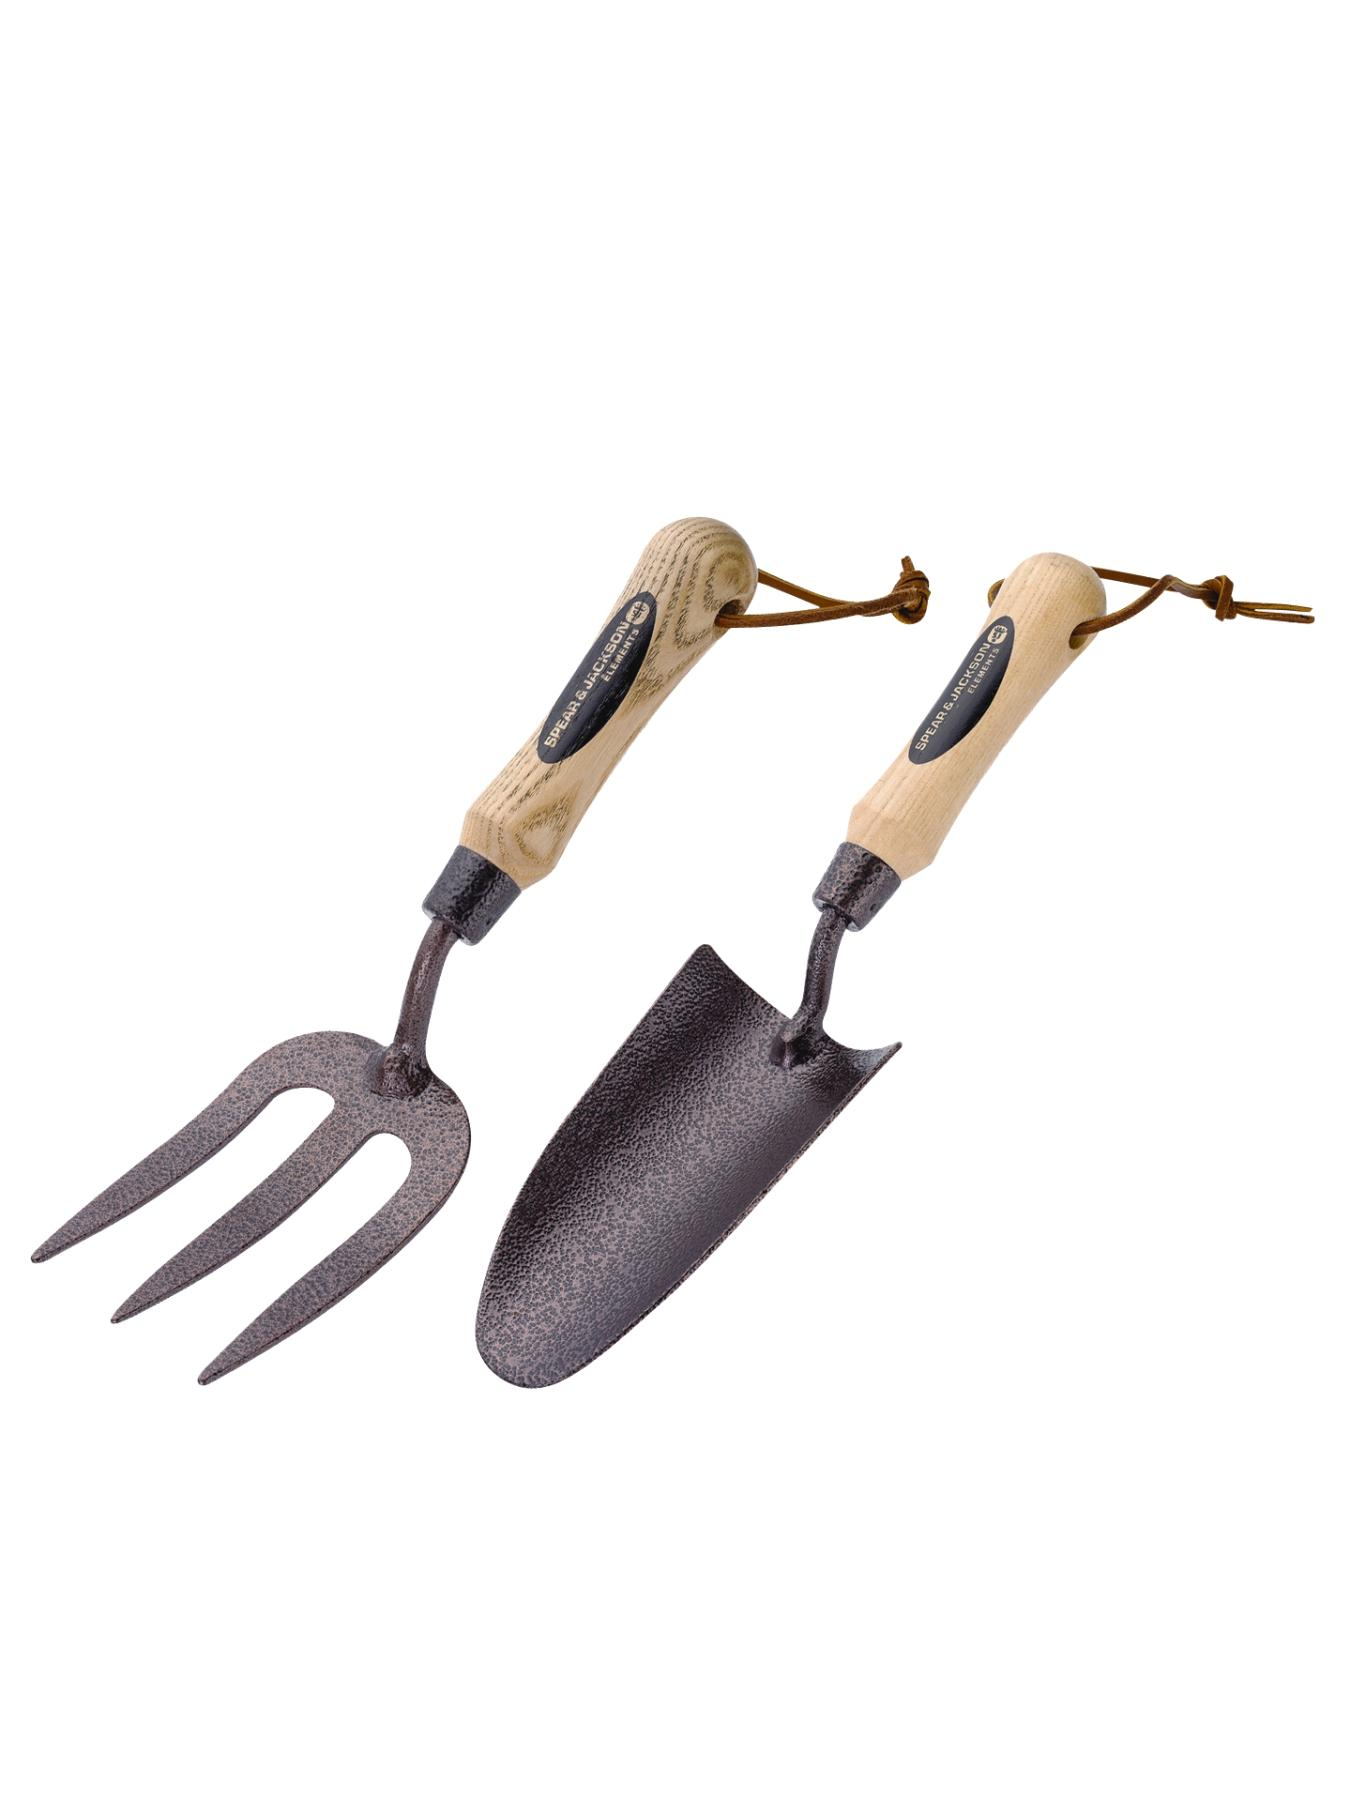 Weedfork and Trowel Set at Littlewoods